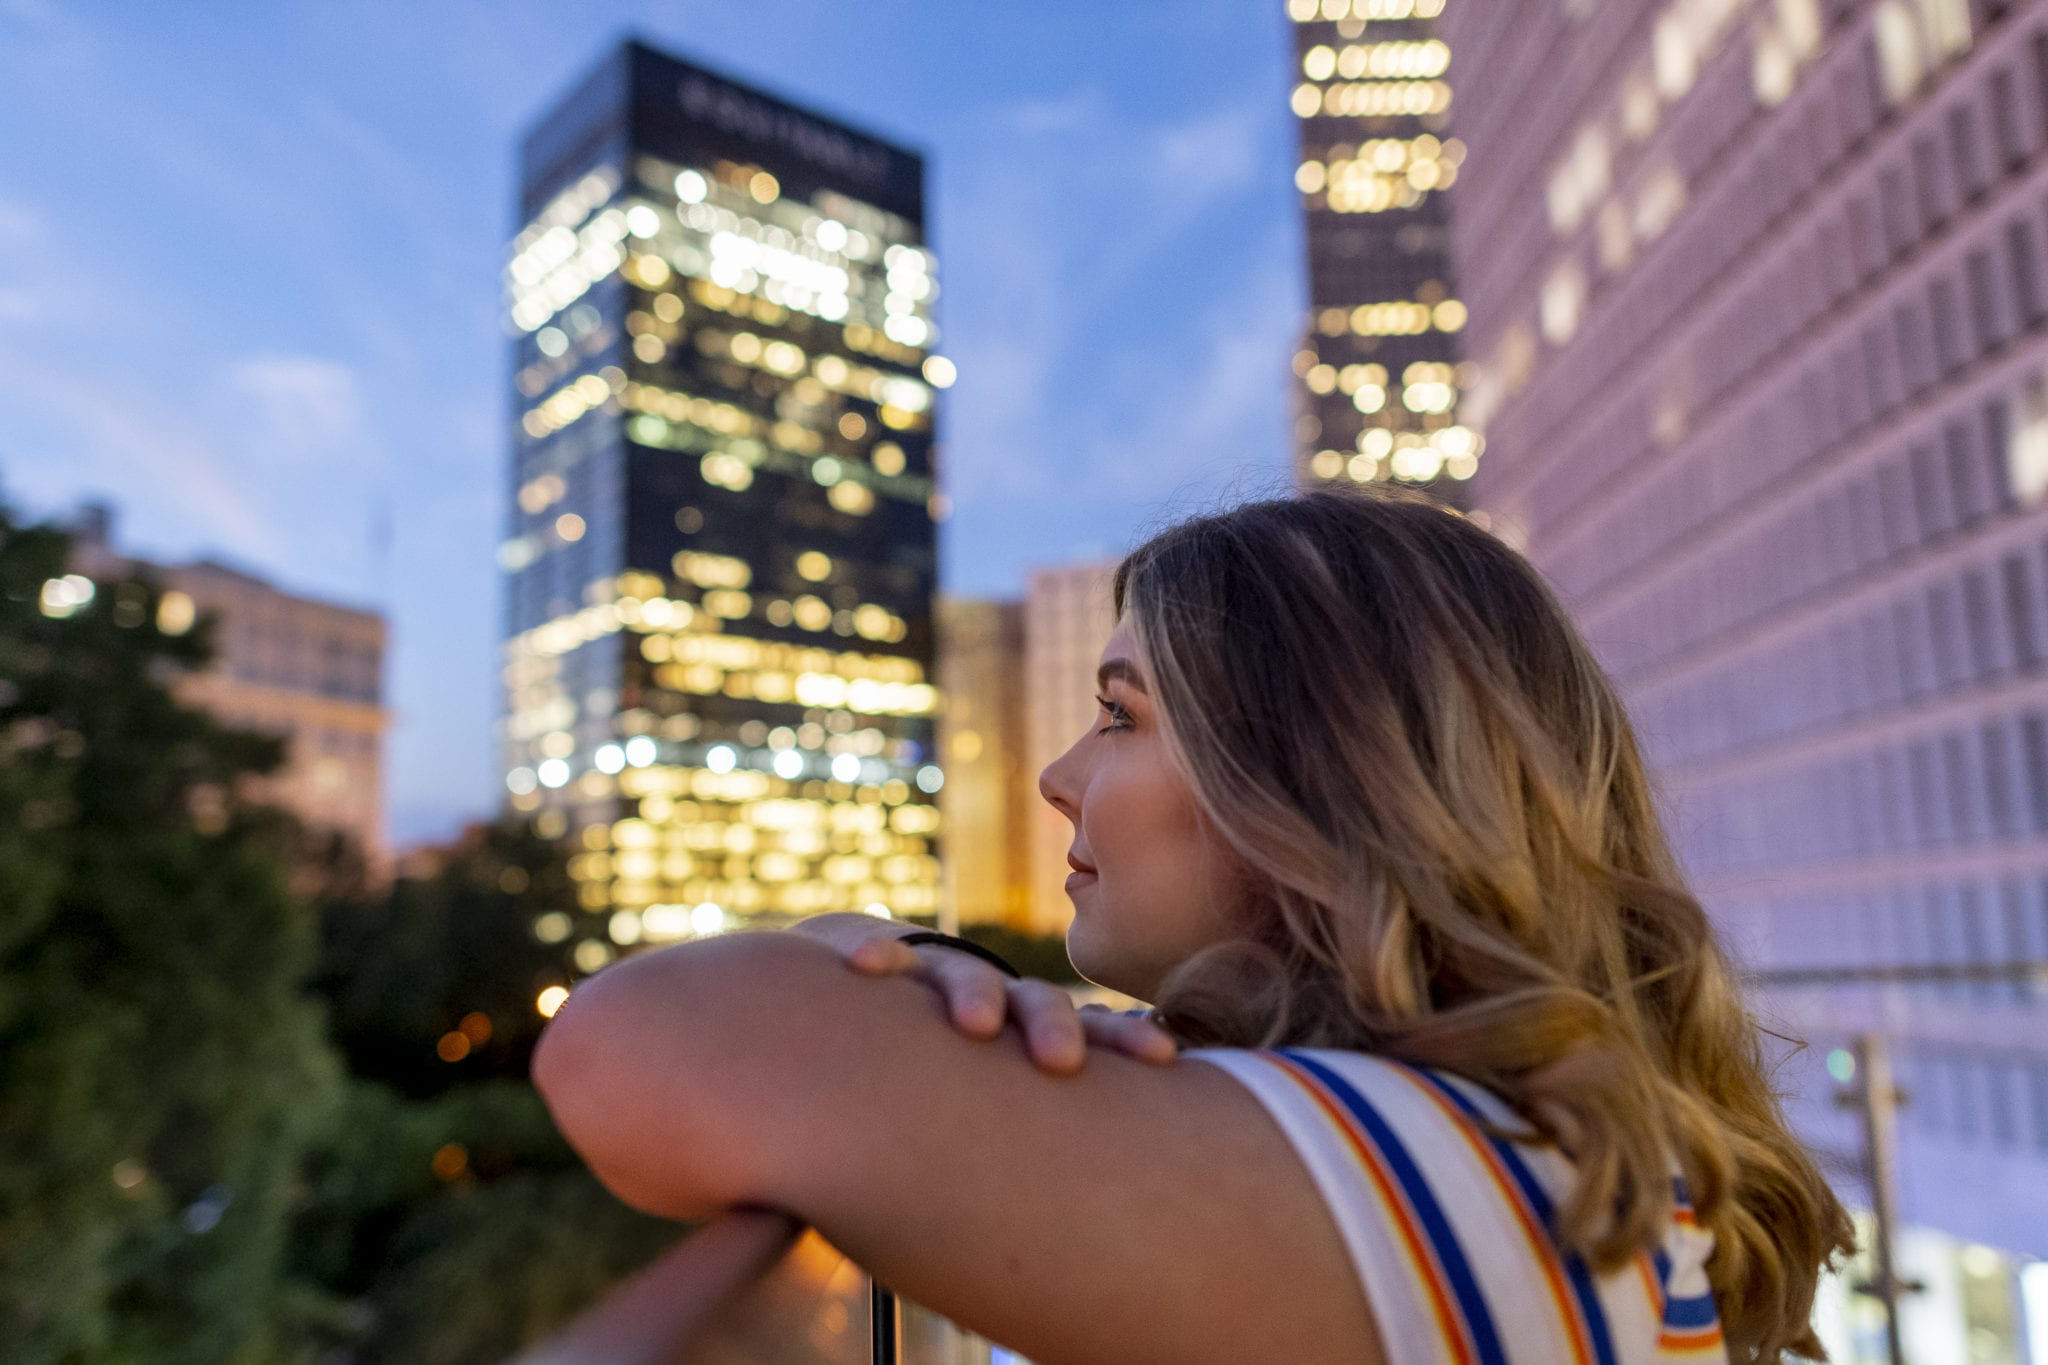 upper body side shot of female student with night skyline of Atlanta in background